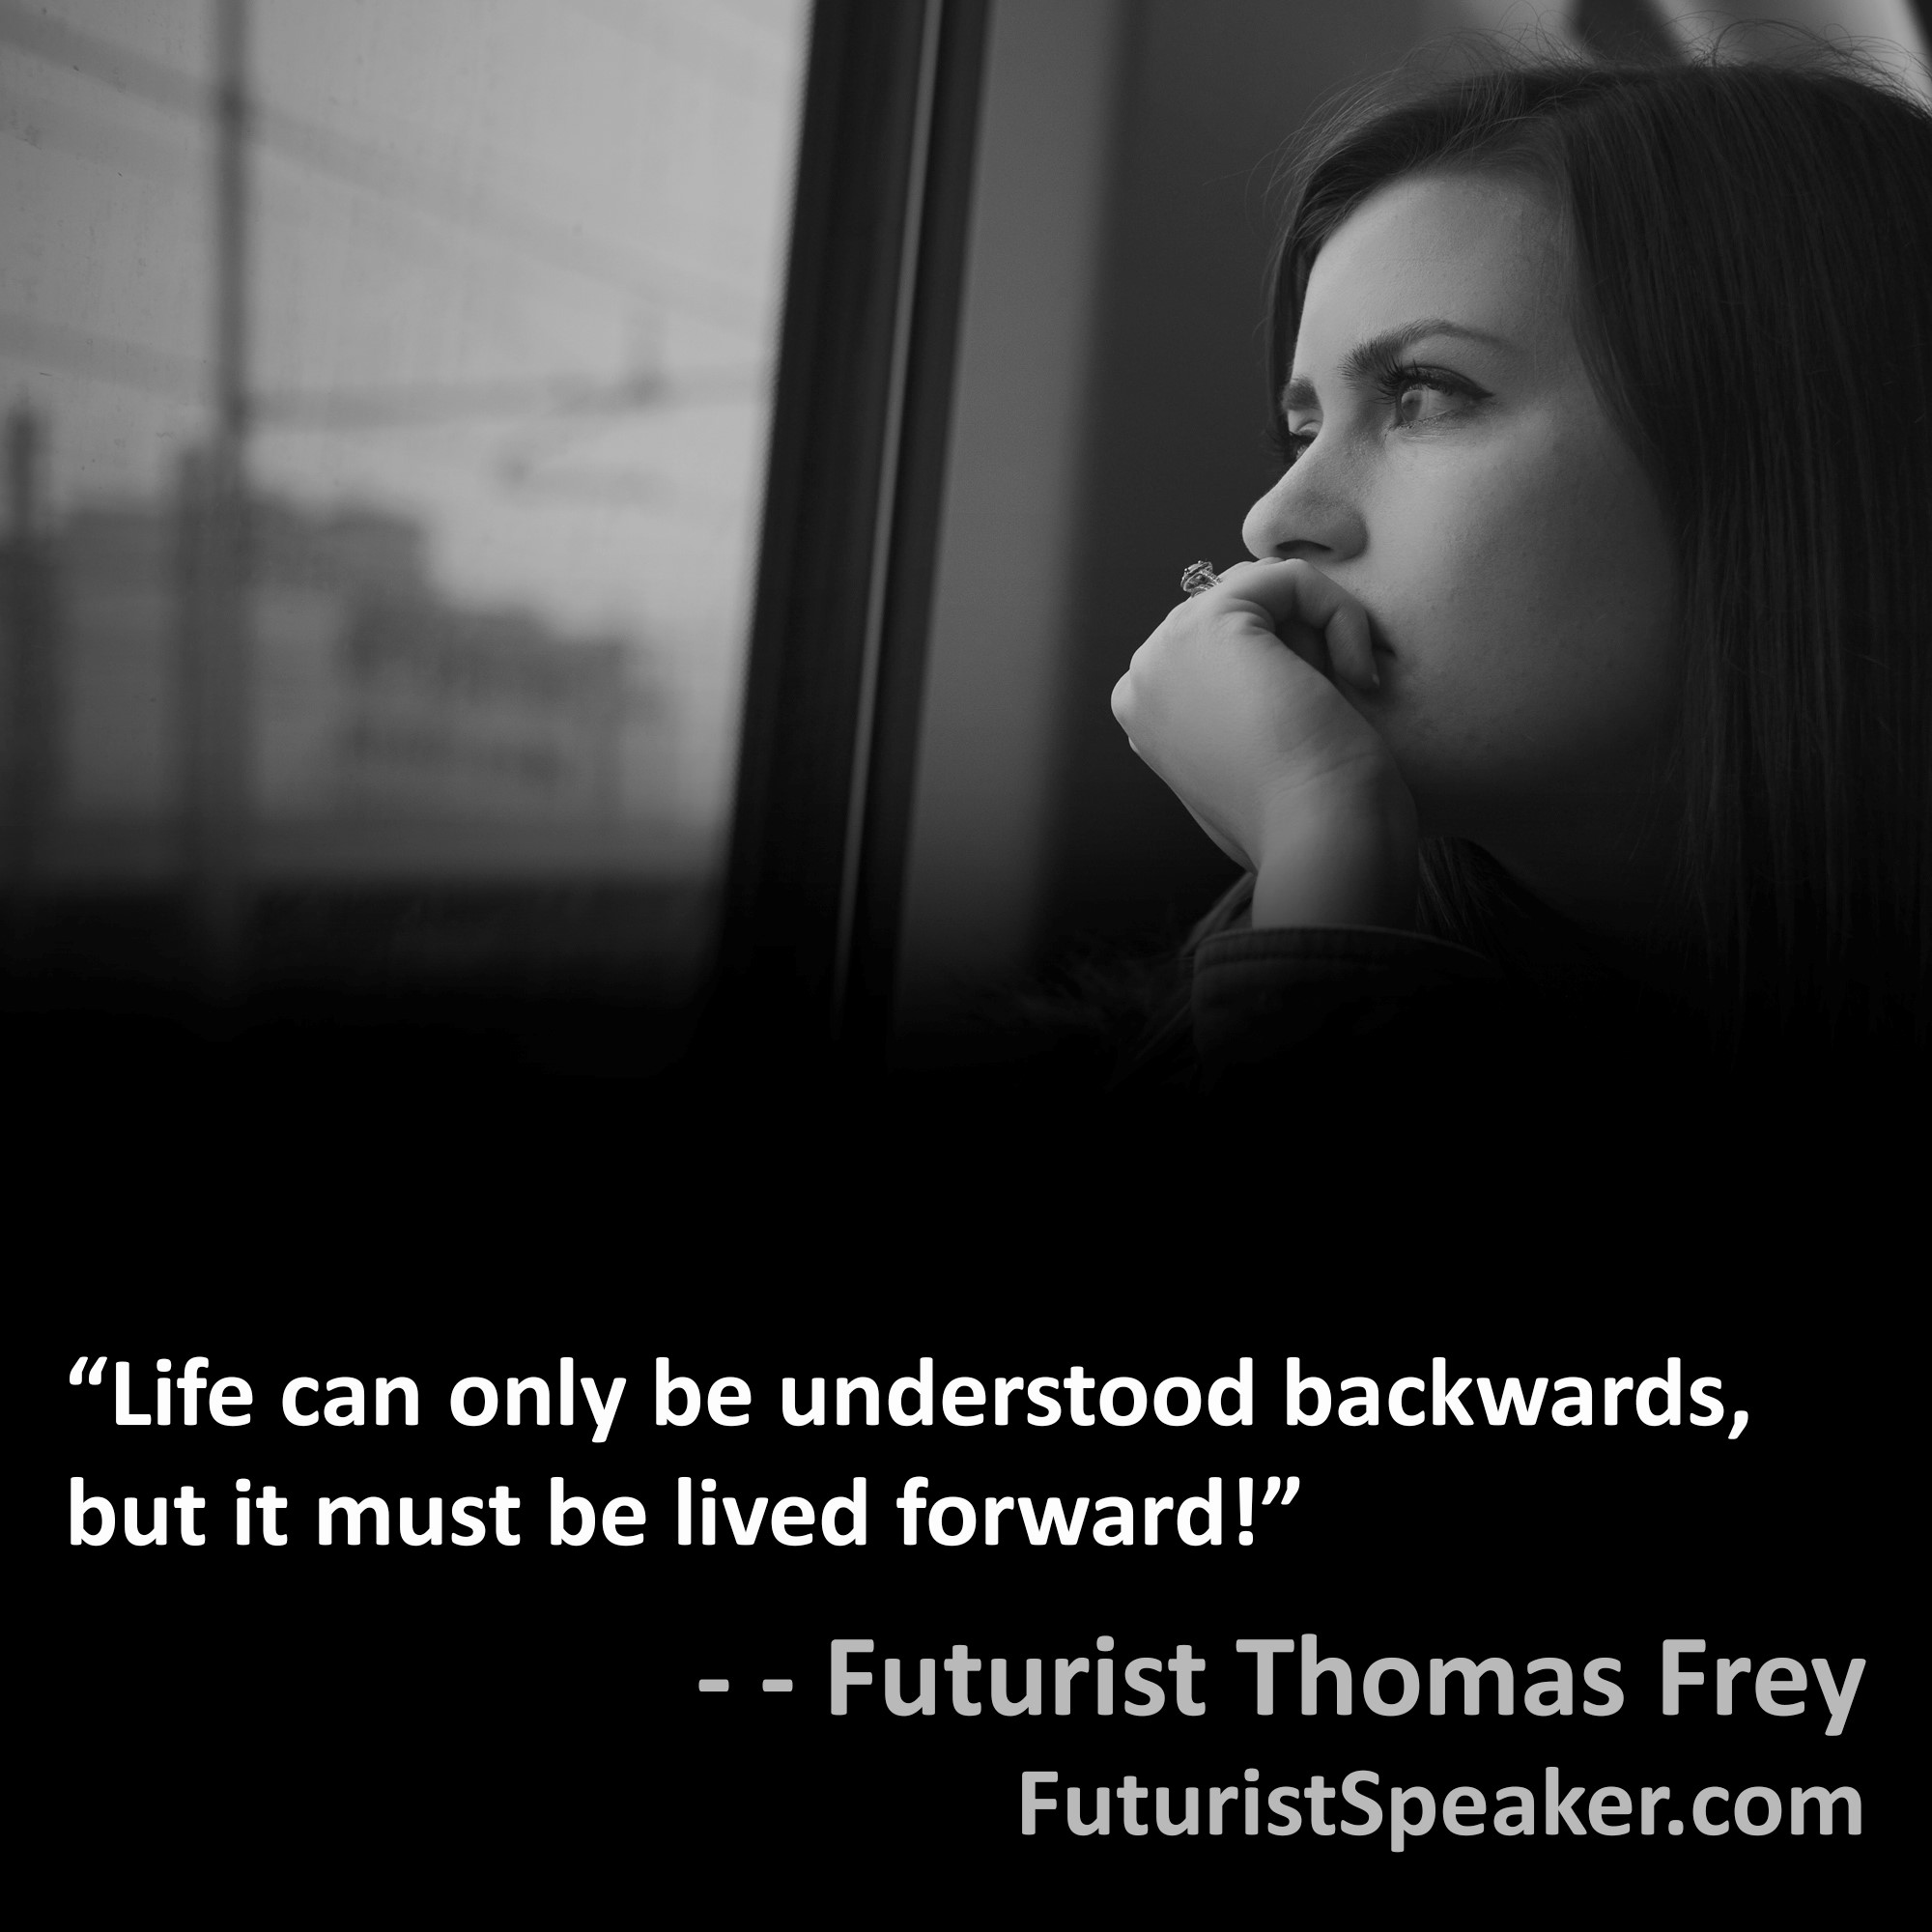 Thomas Frey Futurist Speaker Famous Quote: Life can only be understood backwards, but it must be lived forward.